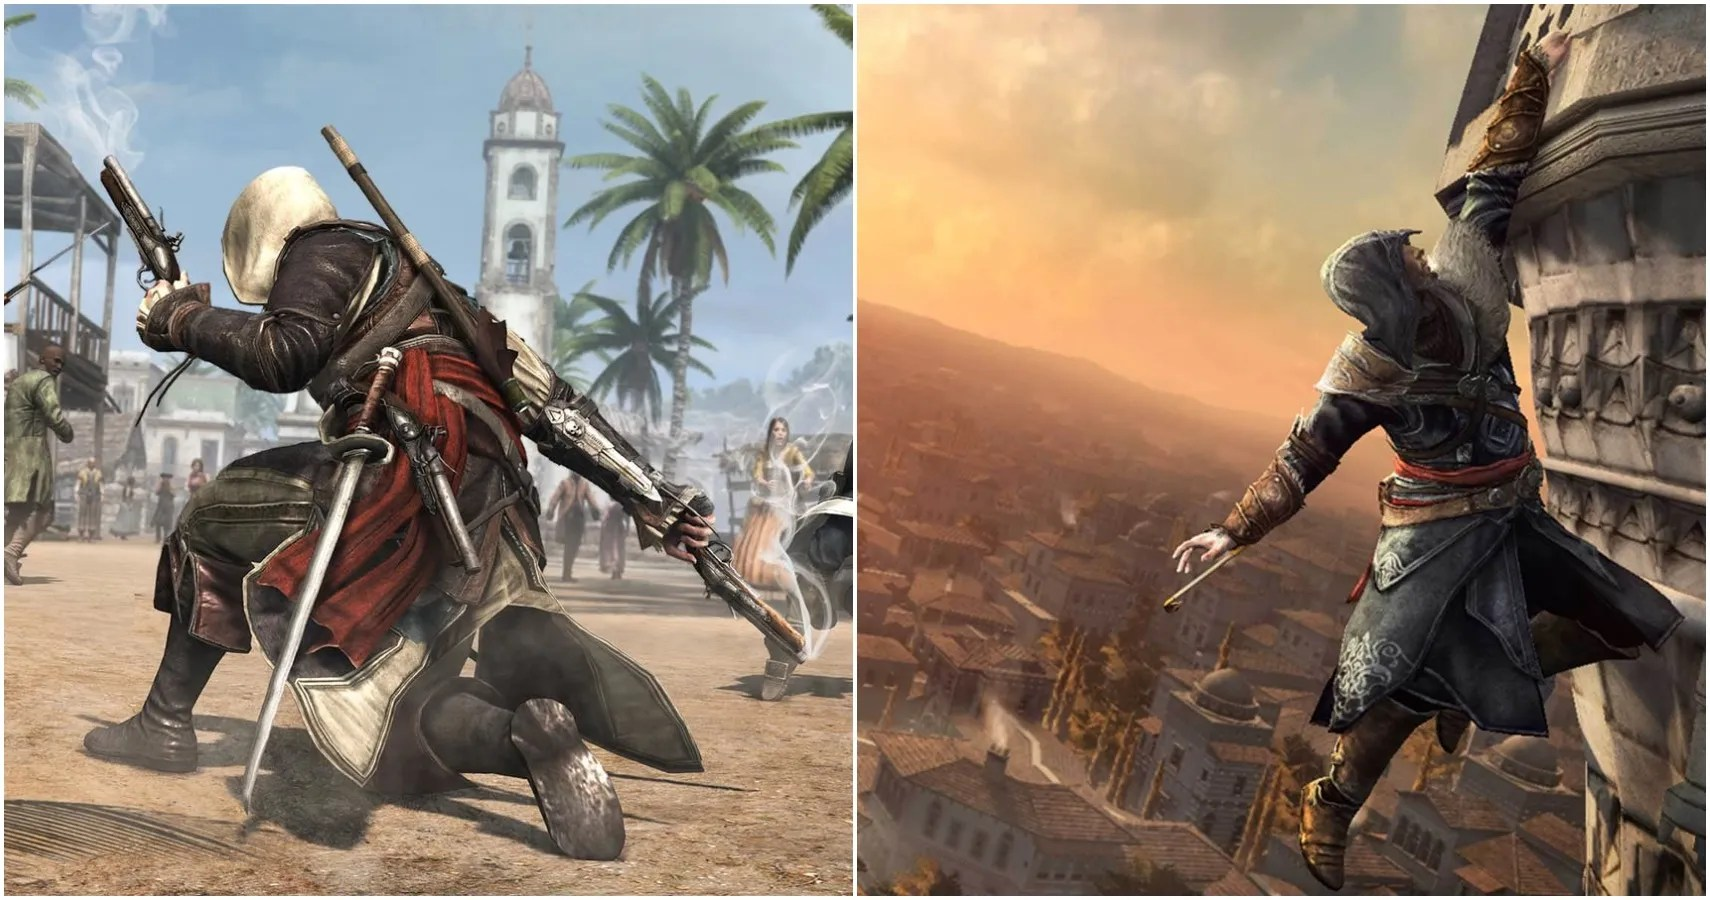 Ranking The Assassin S Creed Games Based On Length